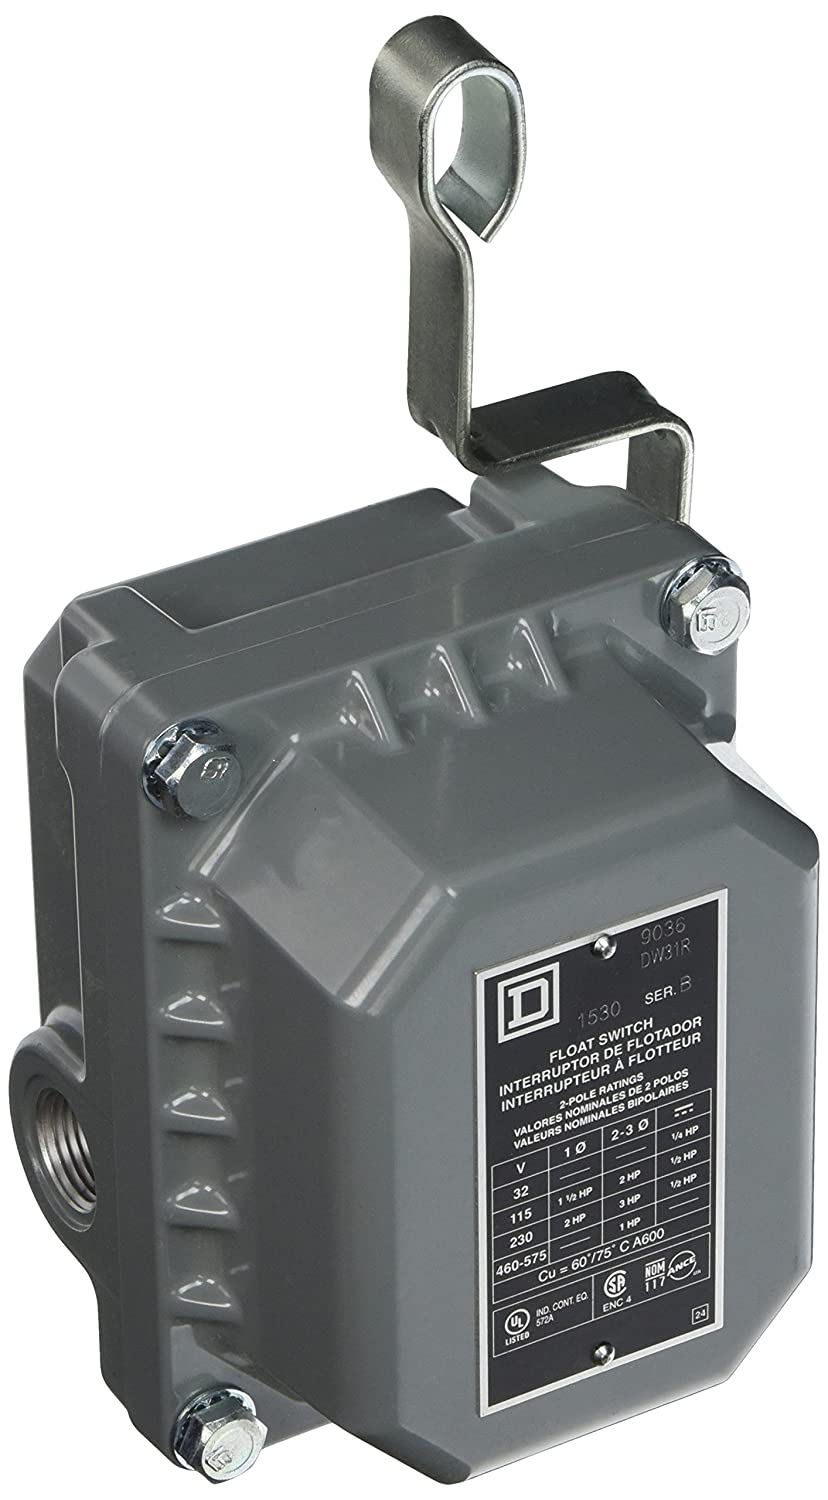 Square D 9036DW31R Commercial Open Tank Float Switch, NEMA 4/7/9, Contacts Open on Rise: Electronic Component Limit Switches: Amazon.com: Industrial & ...